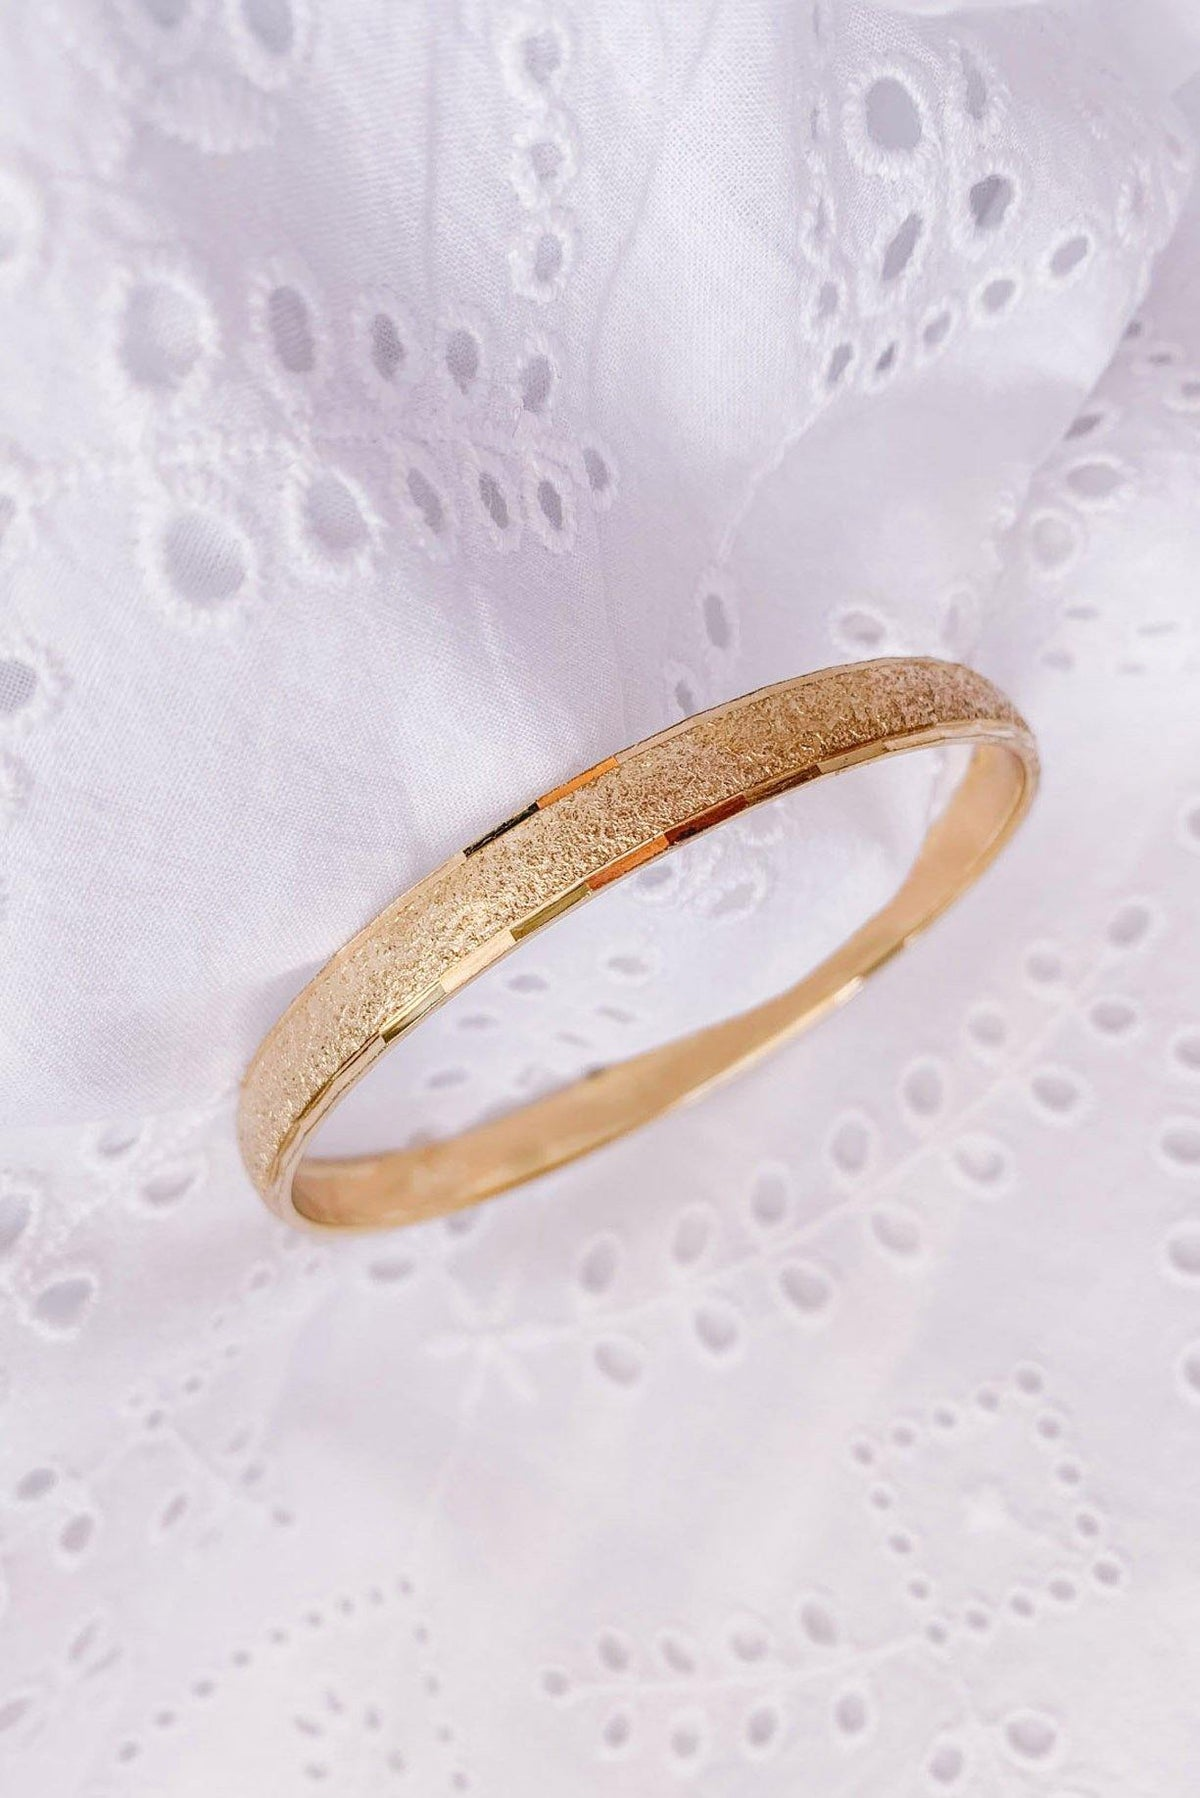 Vintage Etched Bangle from Sweet & Spark